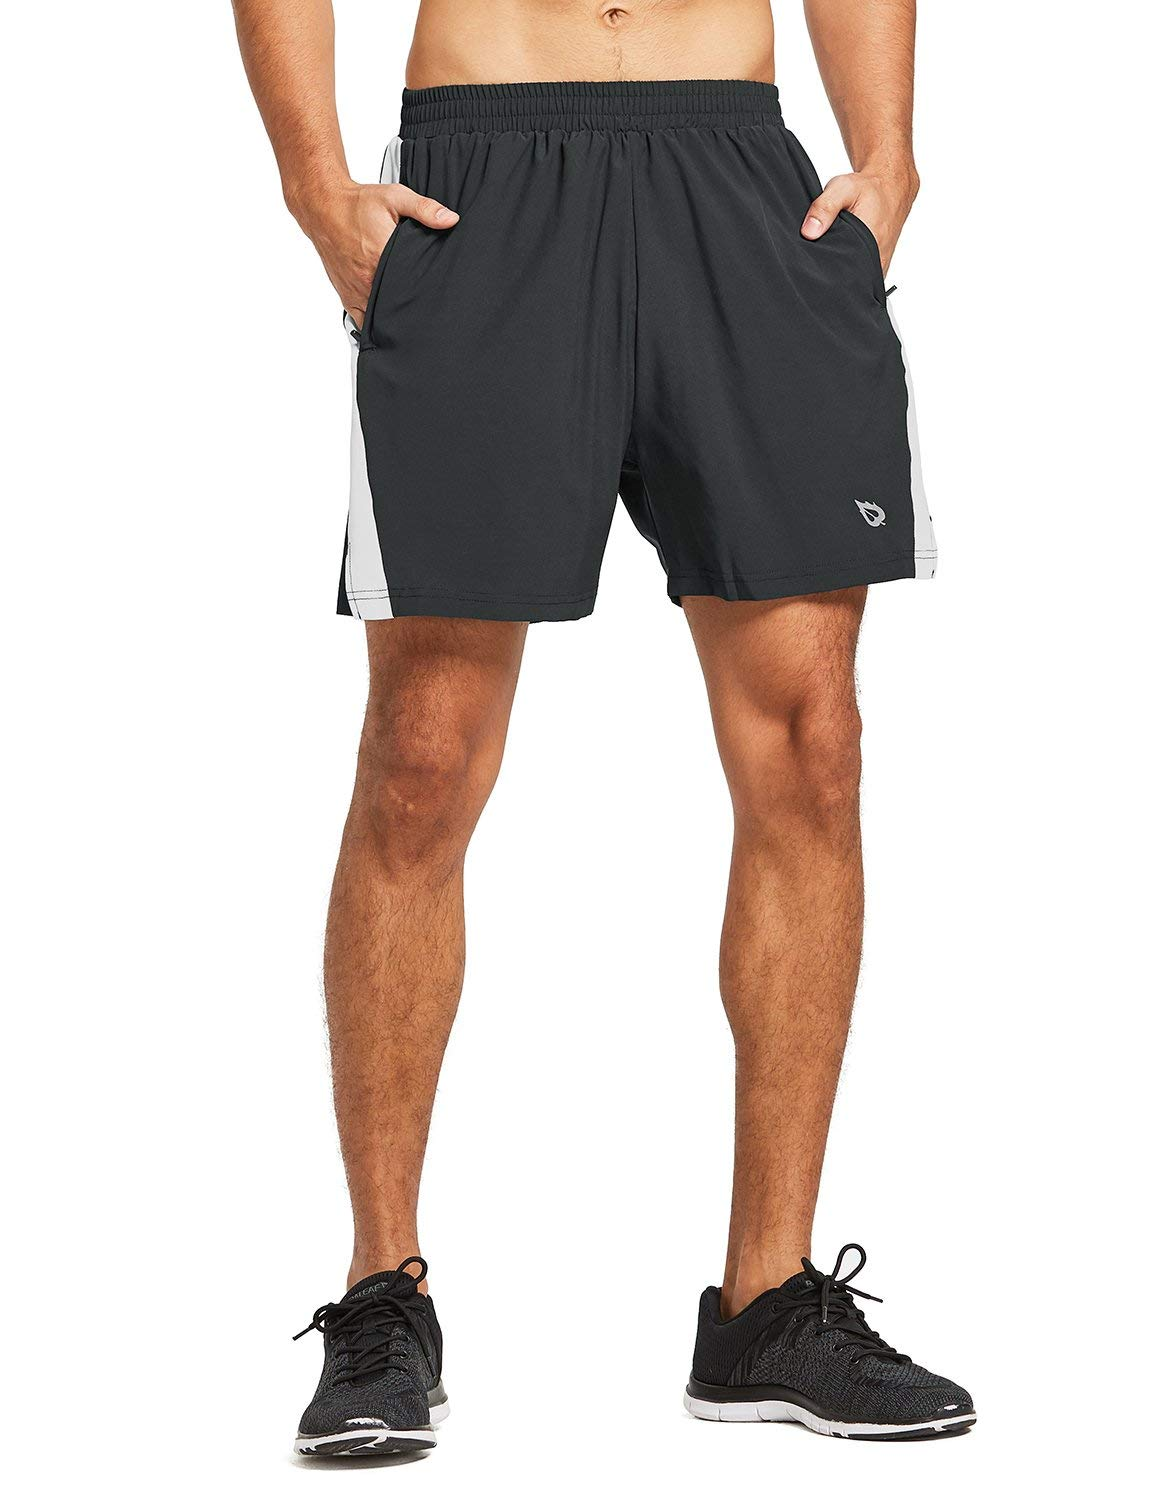 BALEAF Men's 5 Inches Running Athletic Shorts Zipper Pocket Black Size M by BALEAF